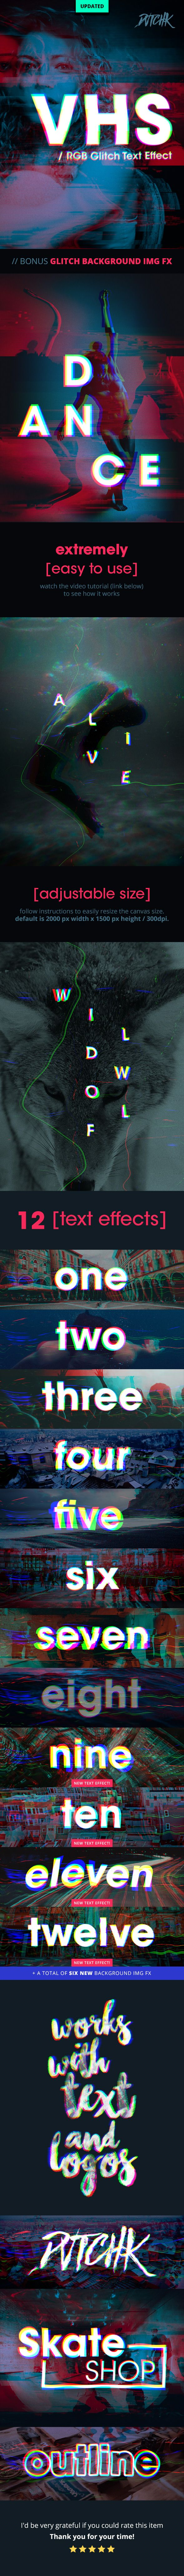 #VHS - RGB Glitch Text #Effect - Text Effects #Actions Download here: https://graphicriver.net/item/vhs-rgb-glitch-text-effect/13543495?ref=alena994